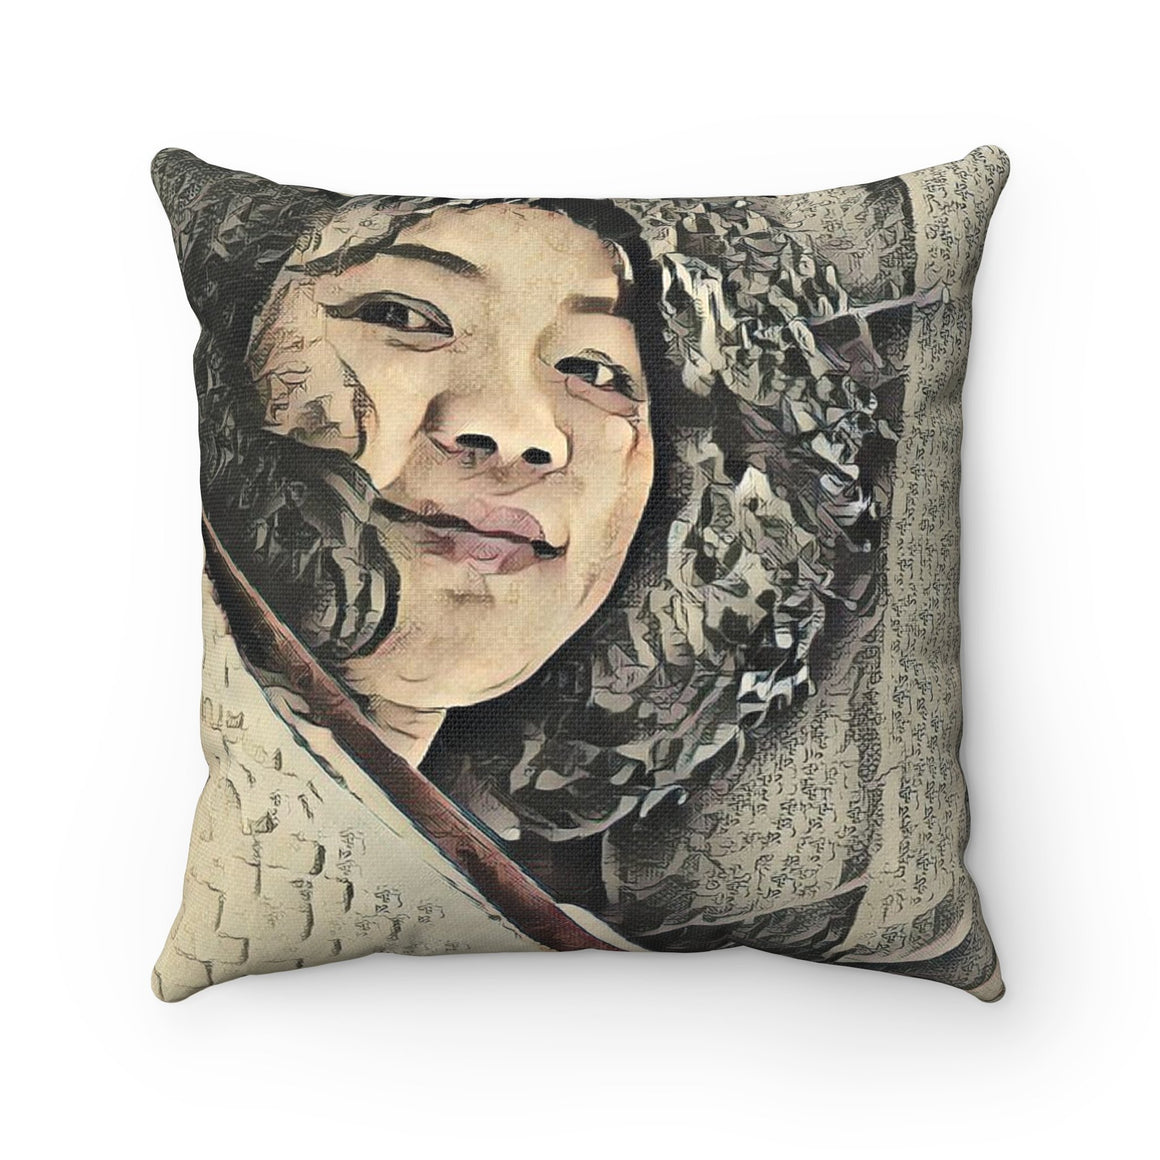 Levi Thang Vintage Face Design I Spun Polyester Square Pillow Case